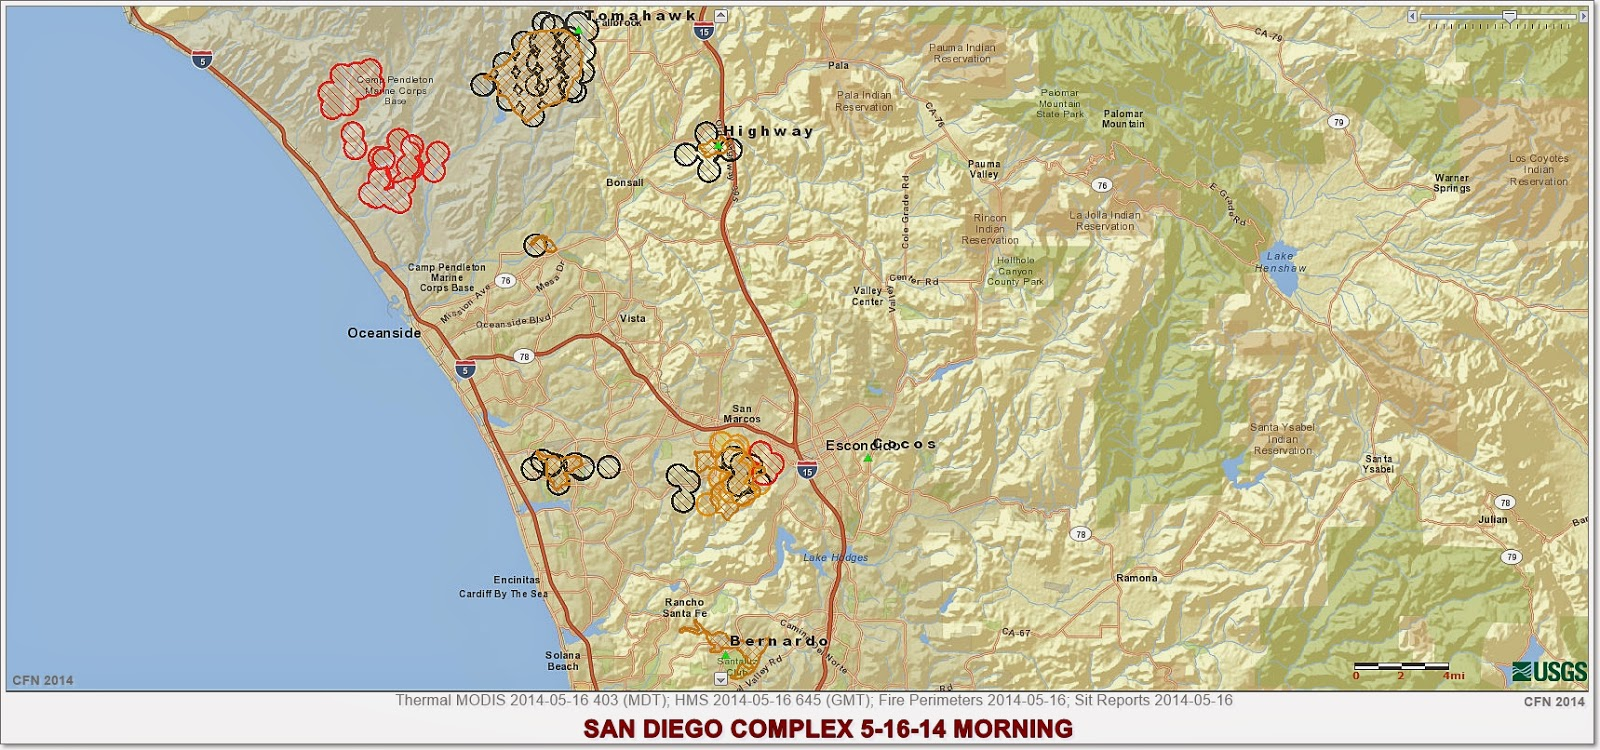 Cfn California Fire News Cal Fire News Quick Look 10 Southern California Wildfires Currently Totals 22 421 Acres Map Cafire